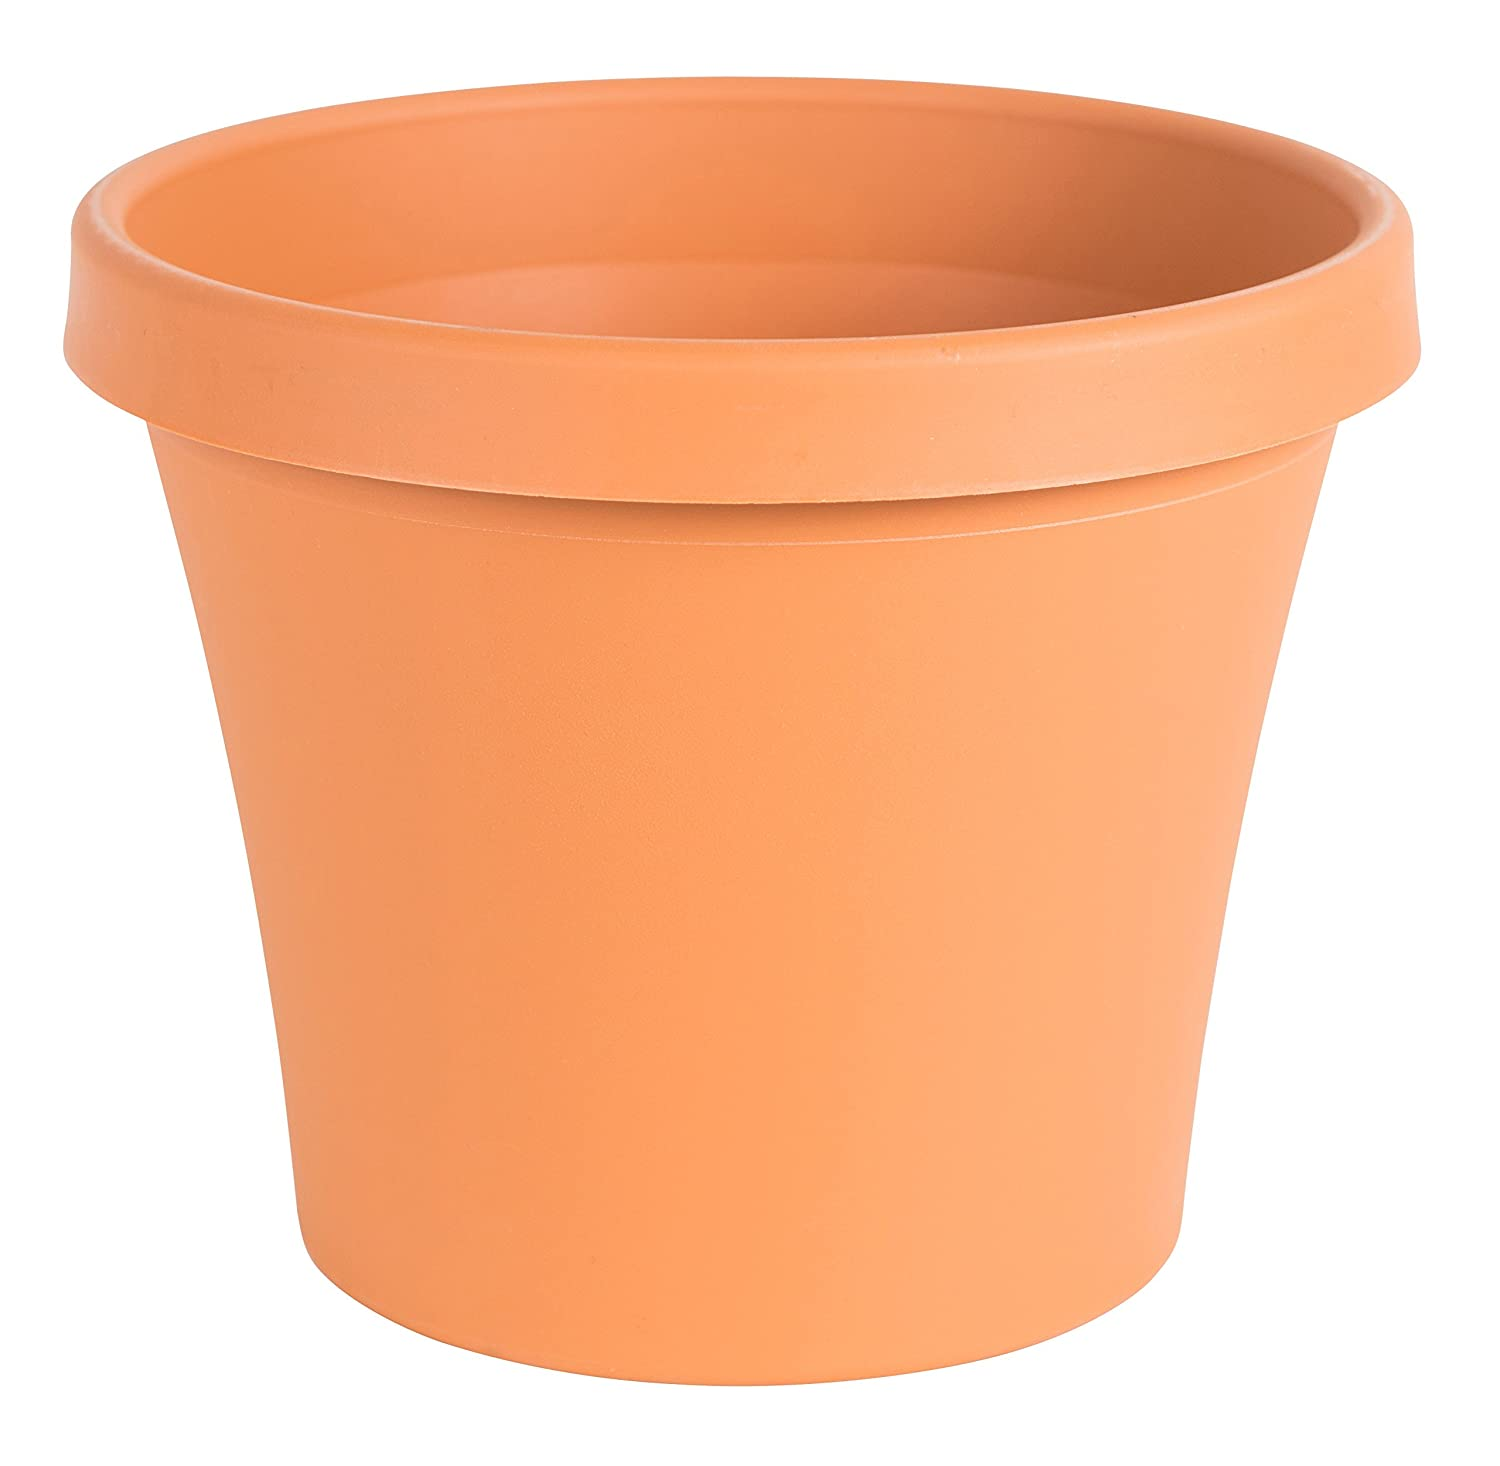 "Bloem Terra Pot Planter 6"" Terra Cotta"